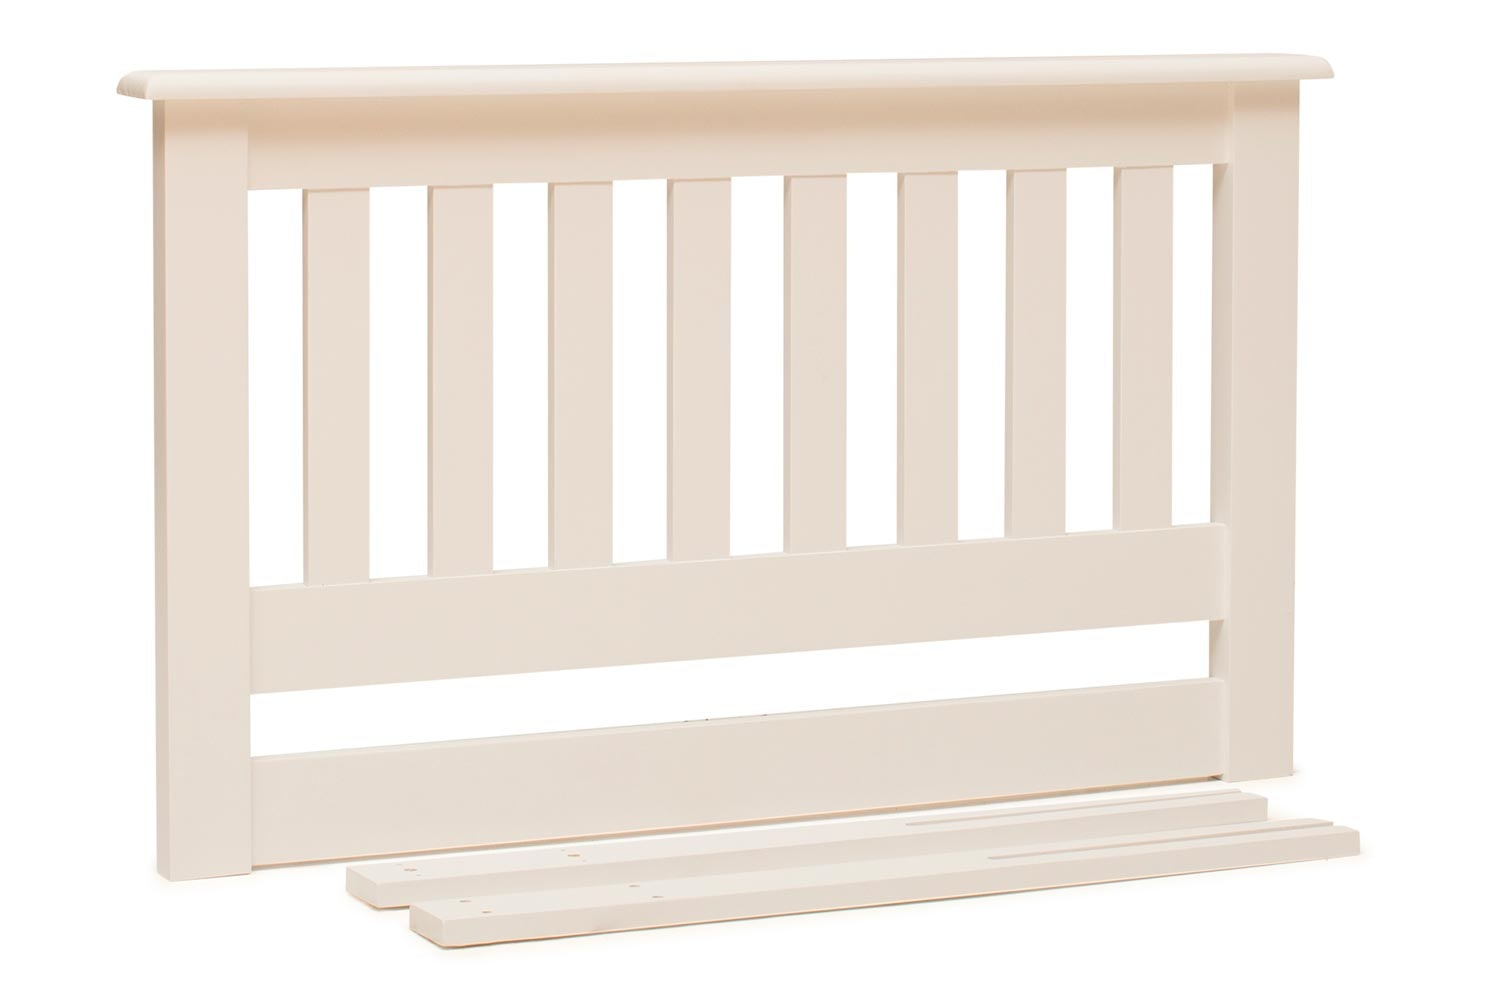 Shaker Headboard | 3Ft | White